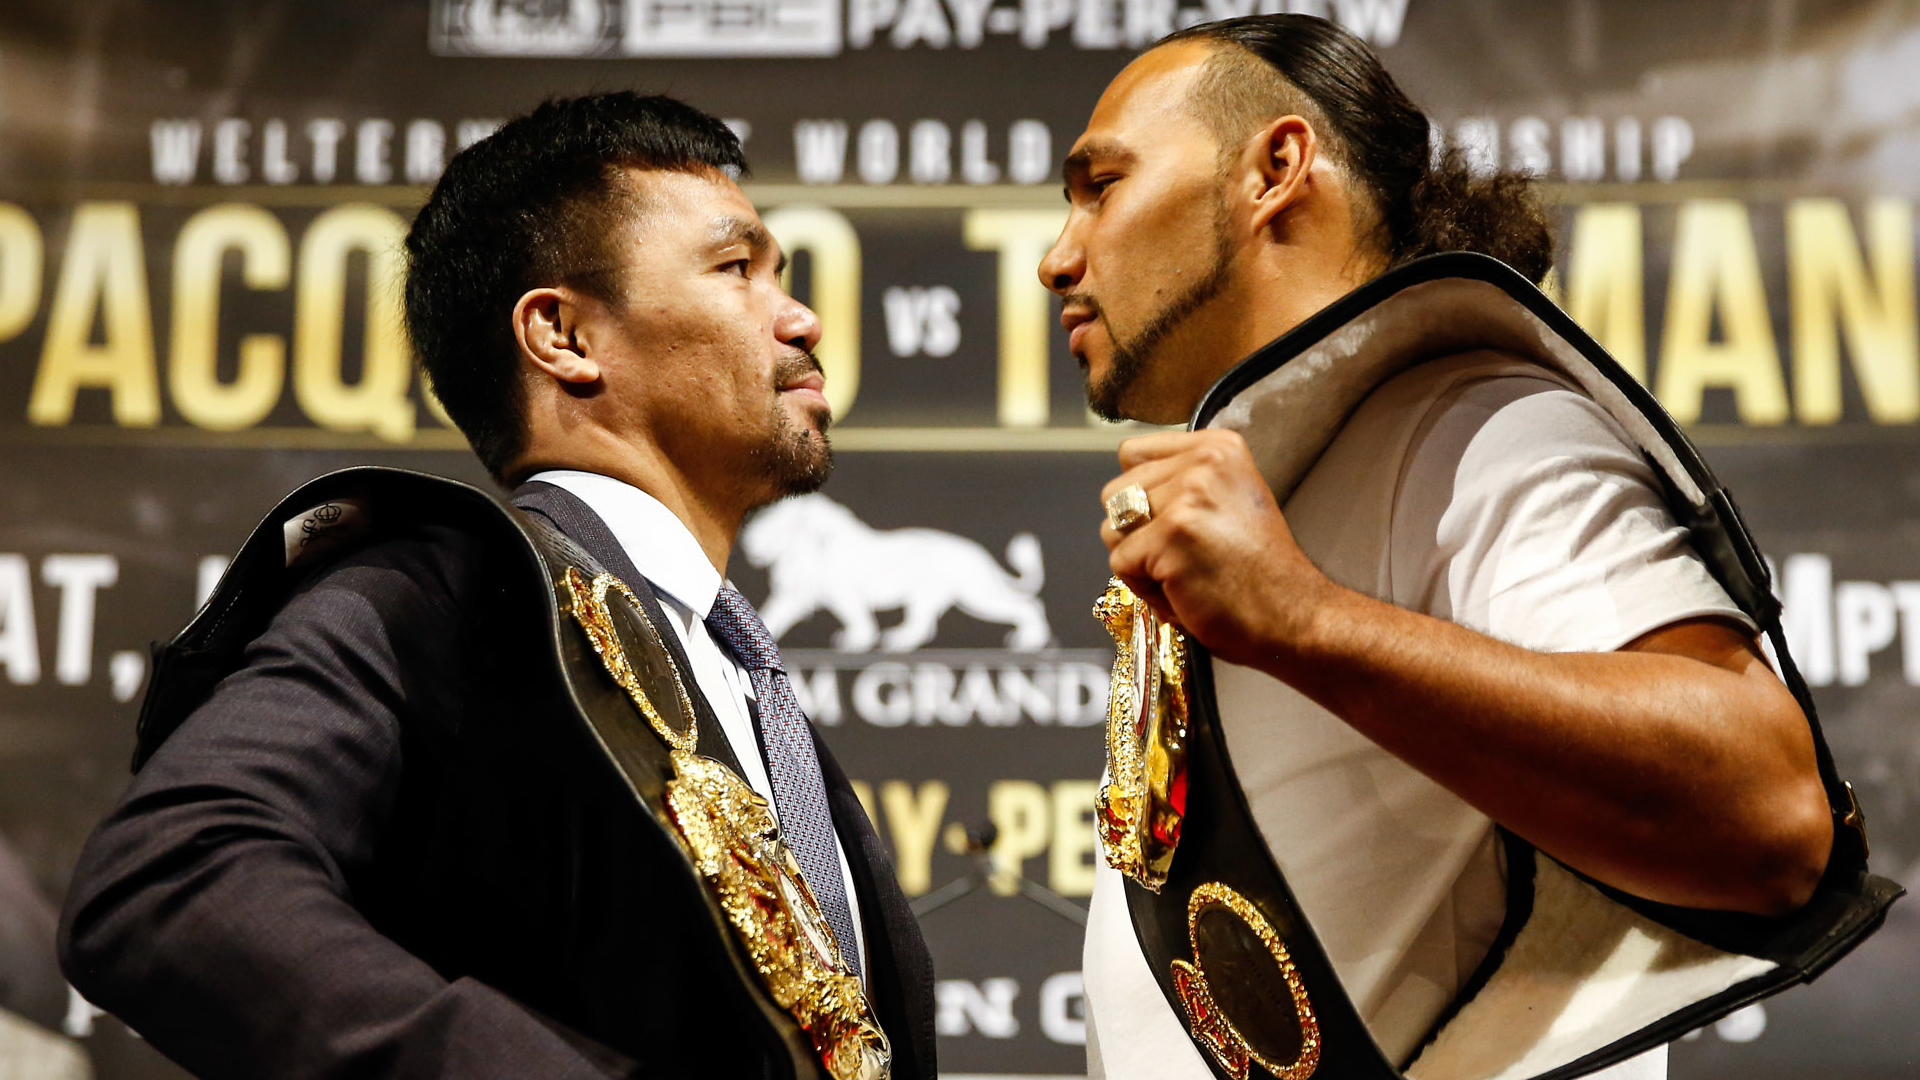 Manny Pacquiao vs. Keith Thurman: Betting odds, expert pick, how to bet on the fight